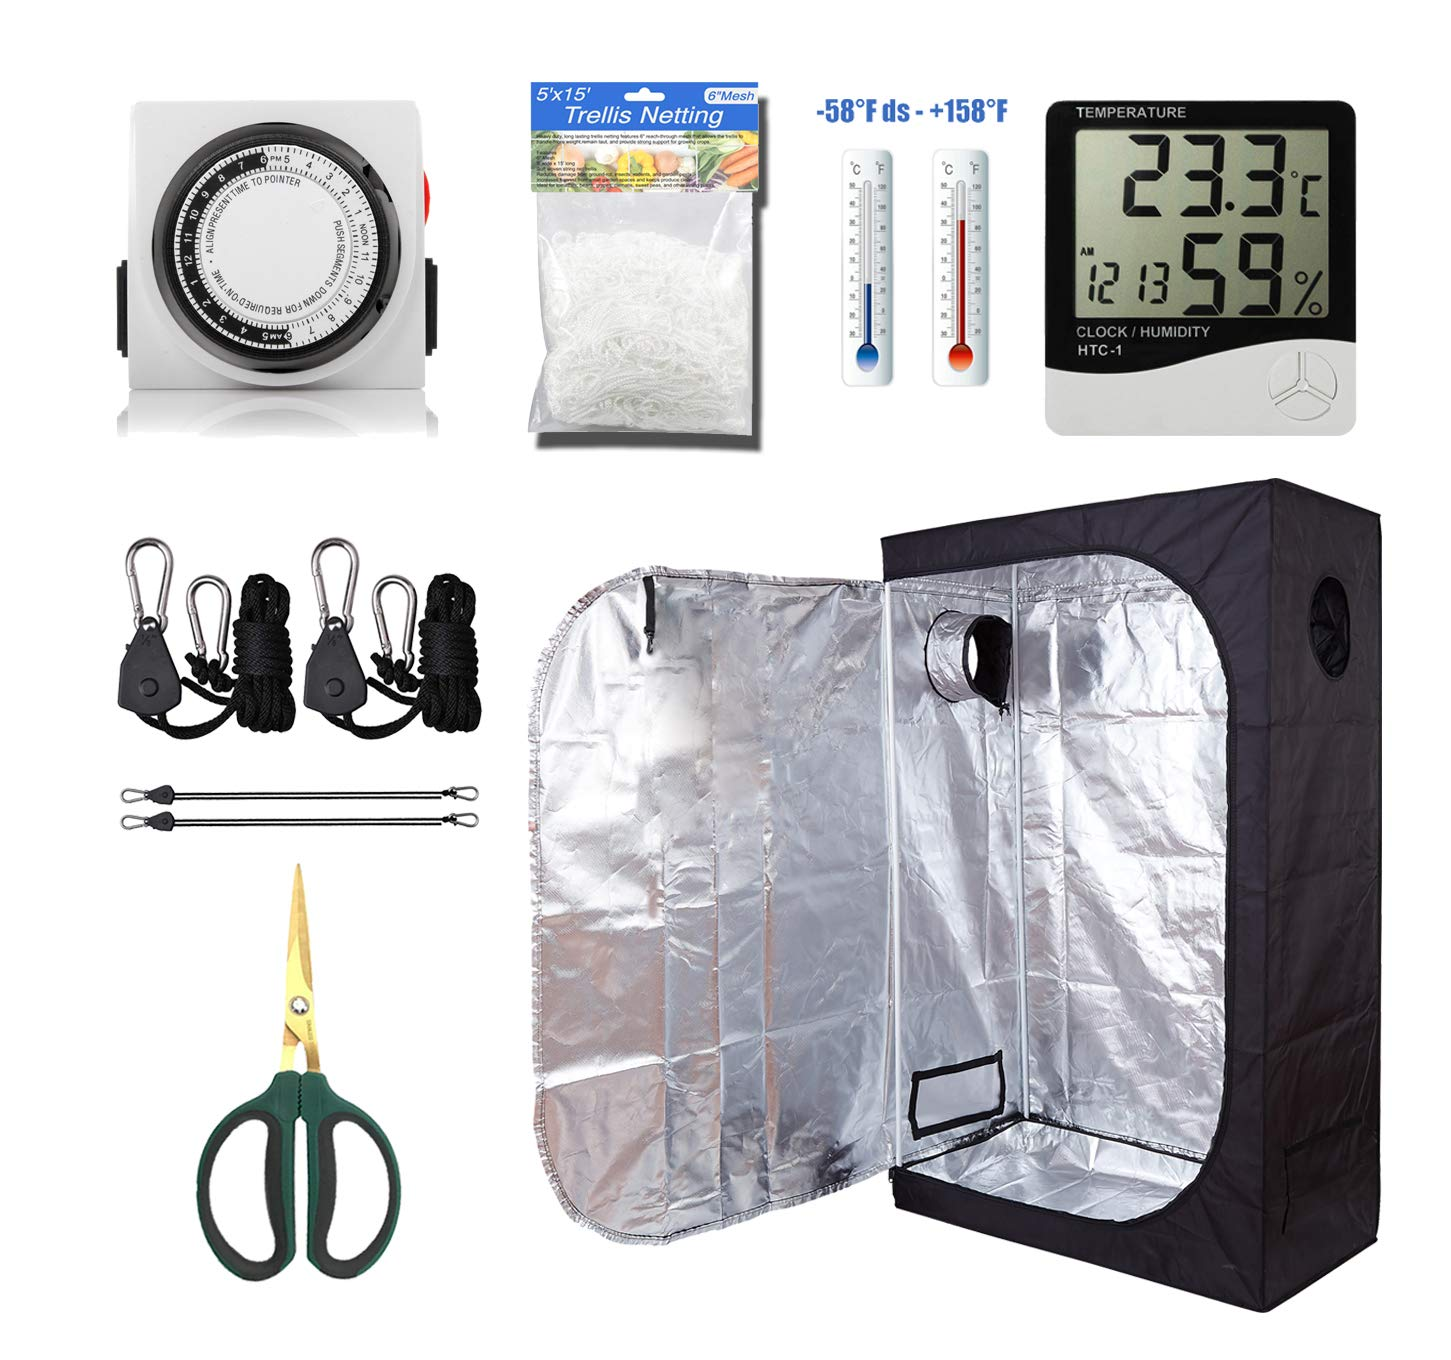 GreenHouser 36''x20''x63'' Grow Tent+Kits-High Reflection Room Grow Kits for Indoor Planting +24 Hours Timer+Hangers+Temperature Humidity+Bonsai Shears+Netting Trellis